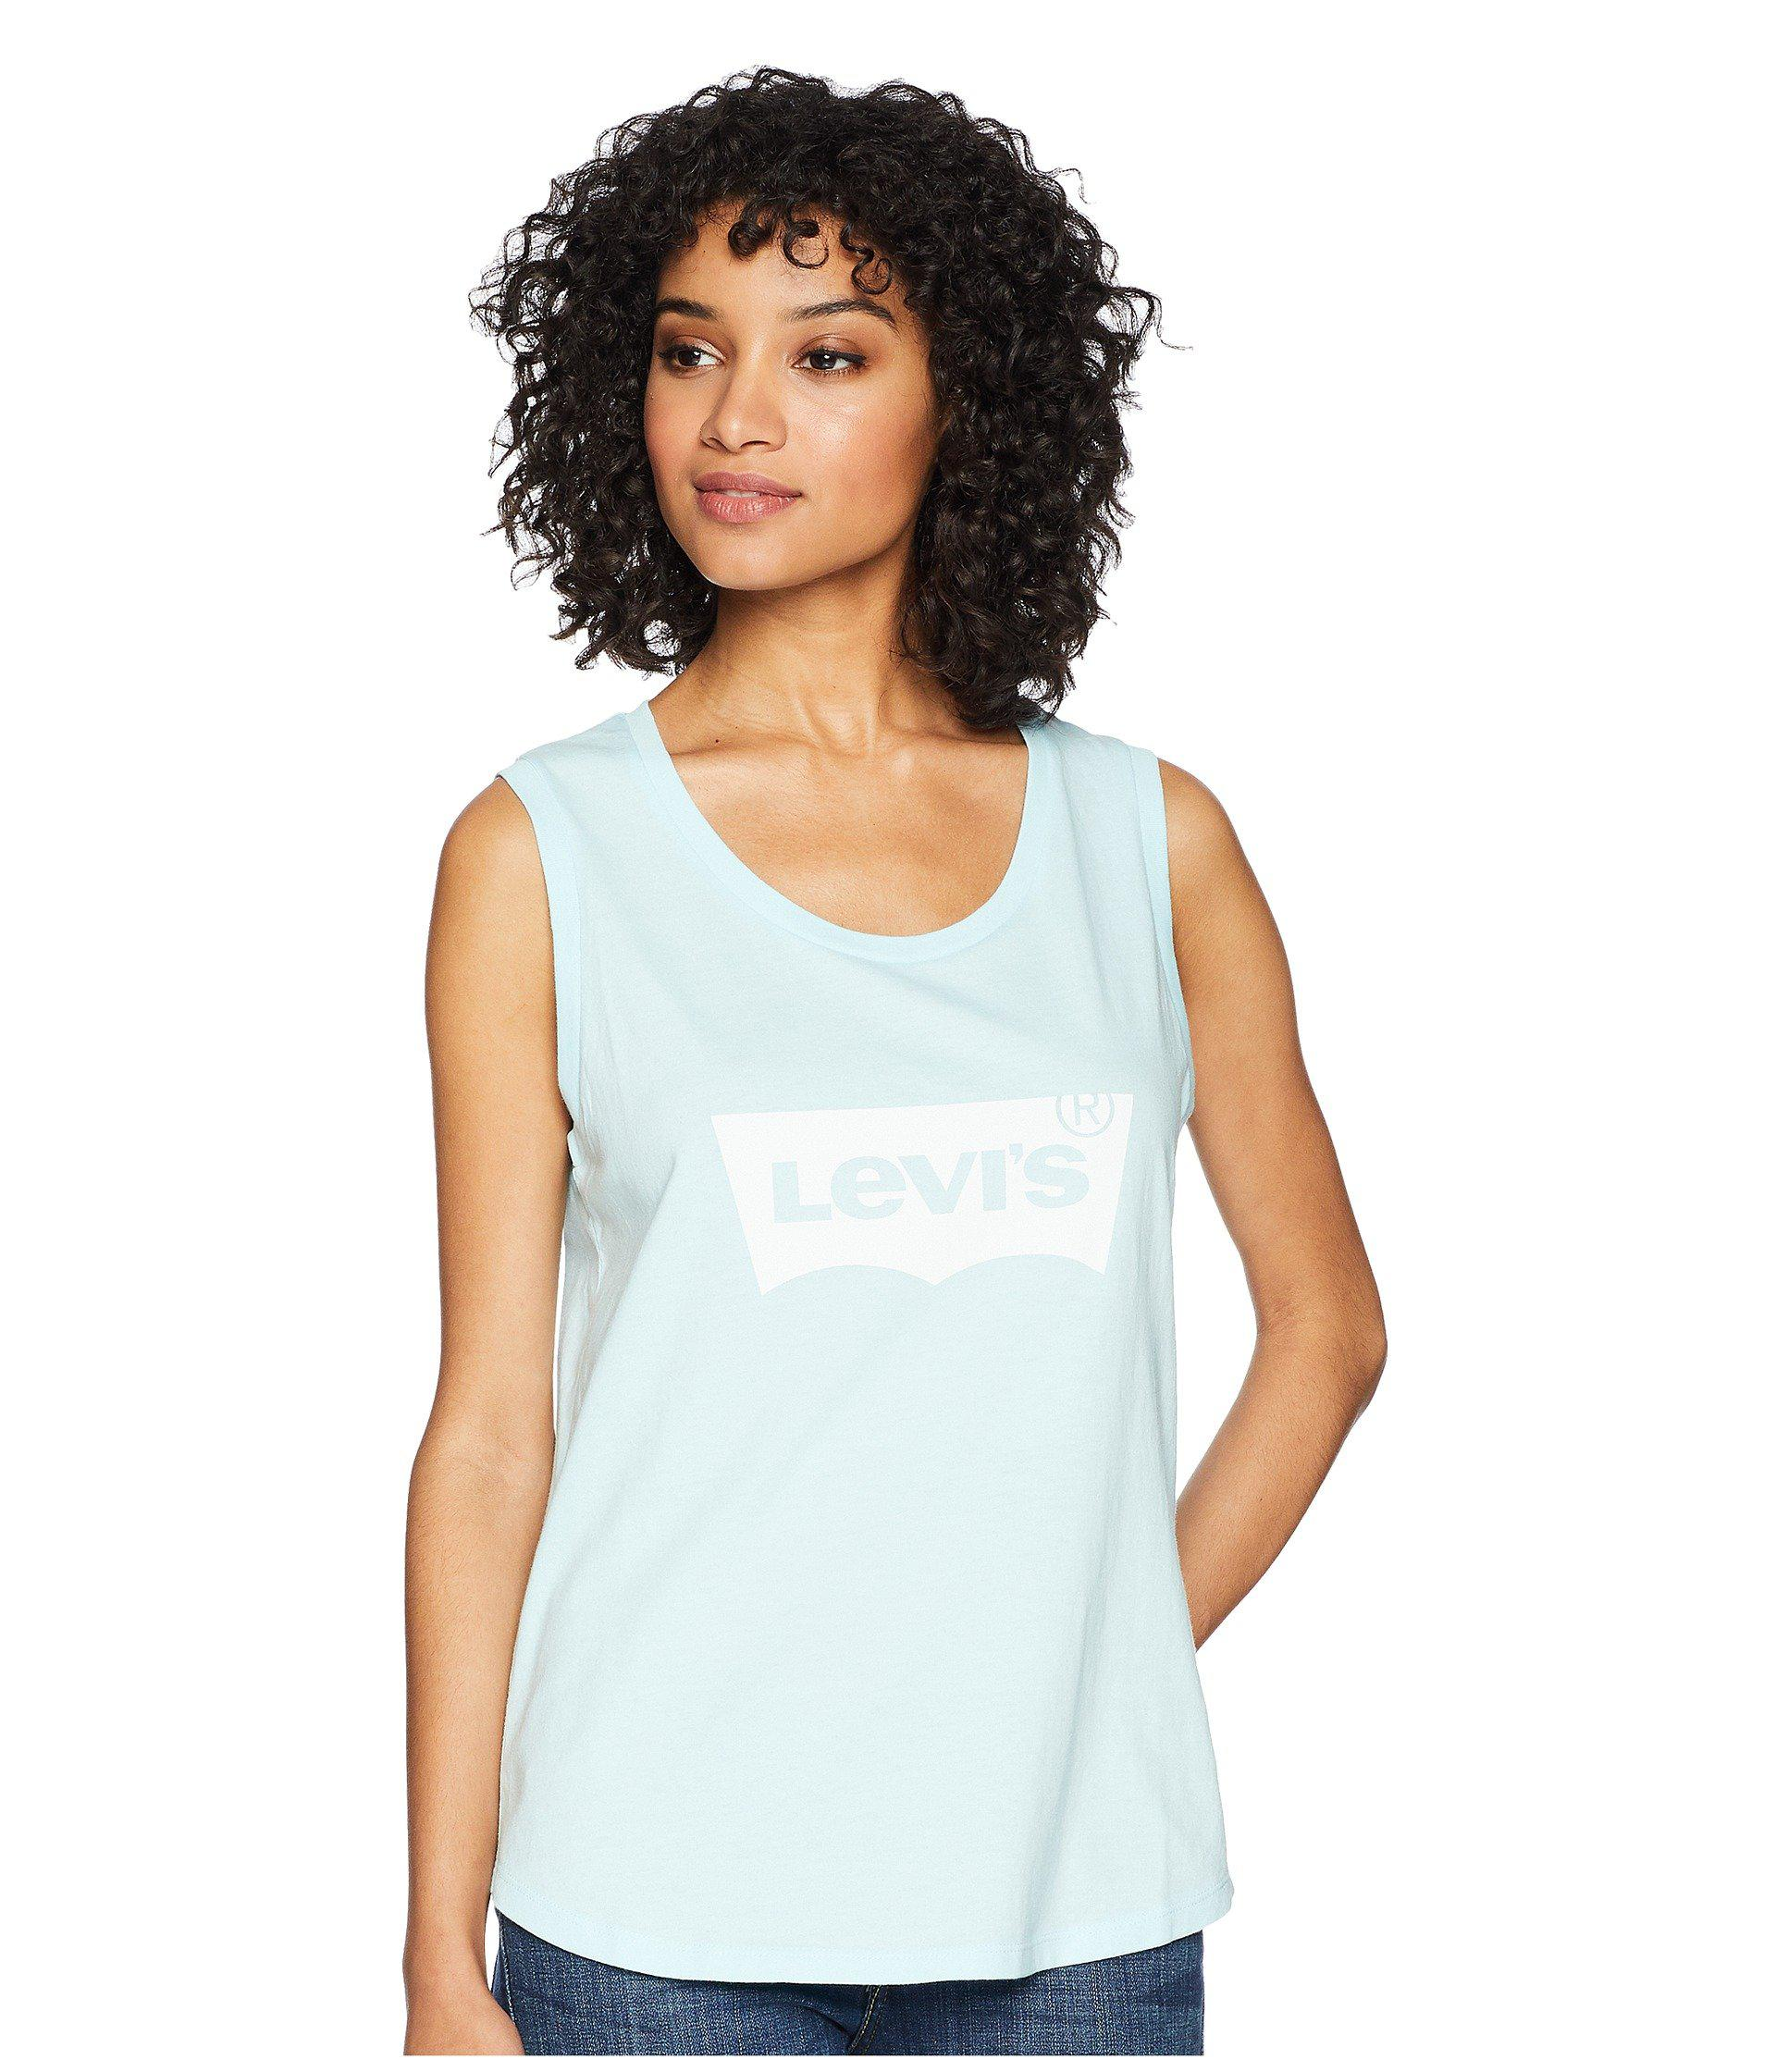 902641ed8f6f18 Lyst - Levi s The Muscle Tank Top in Blue - Save 50%